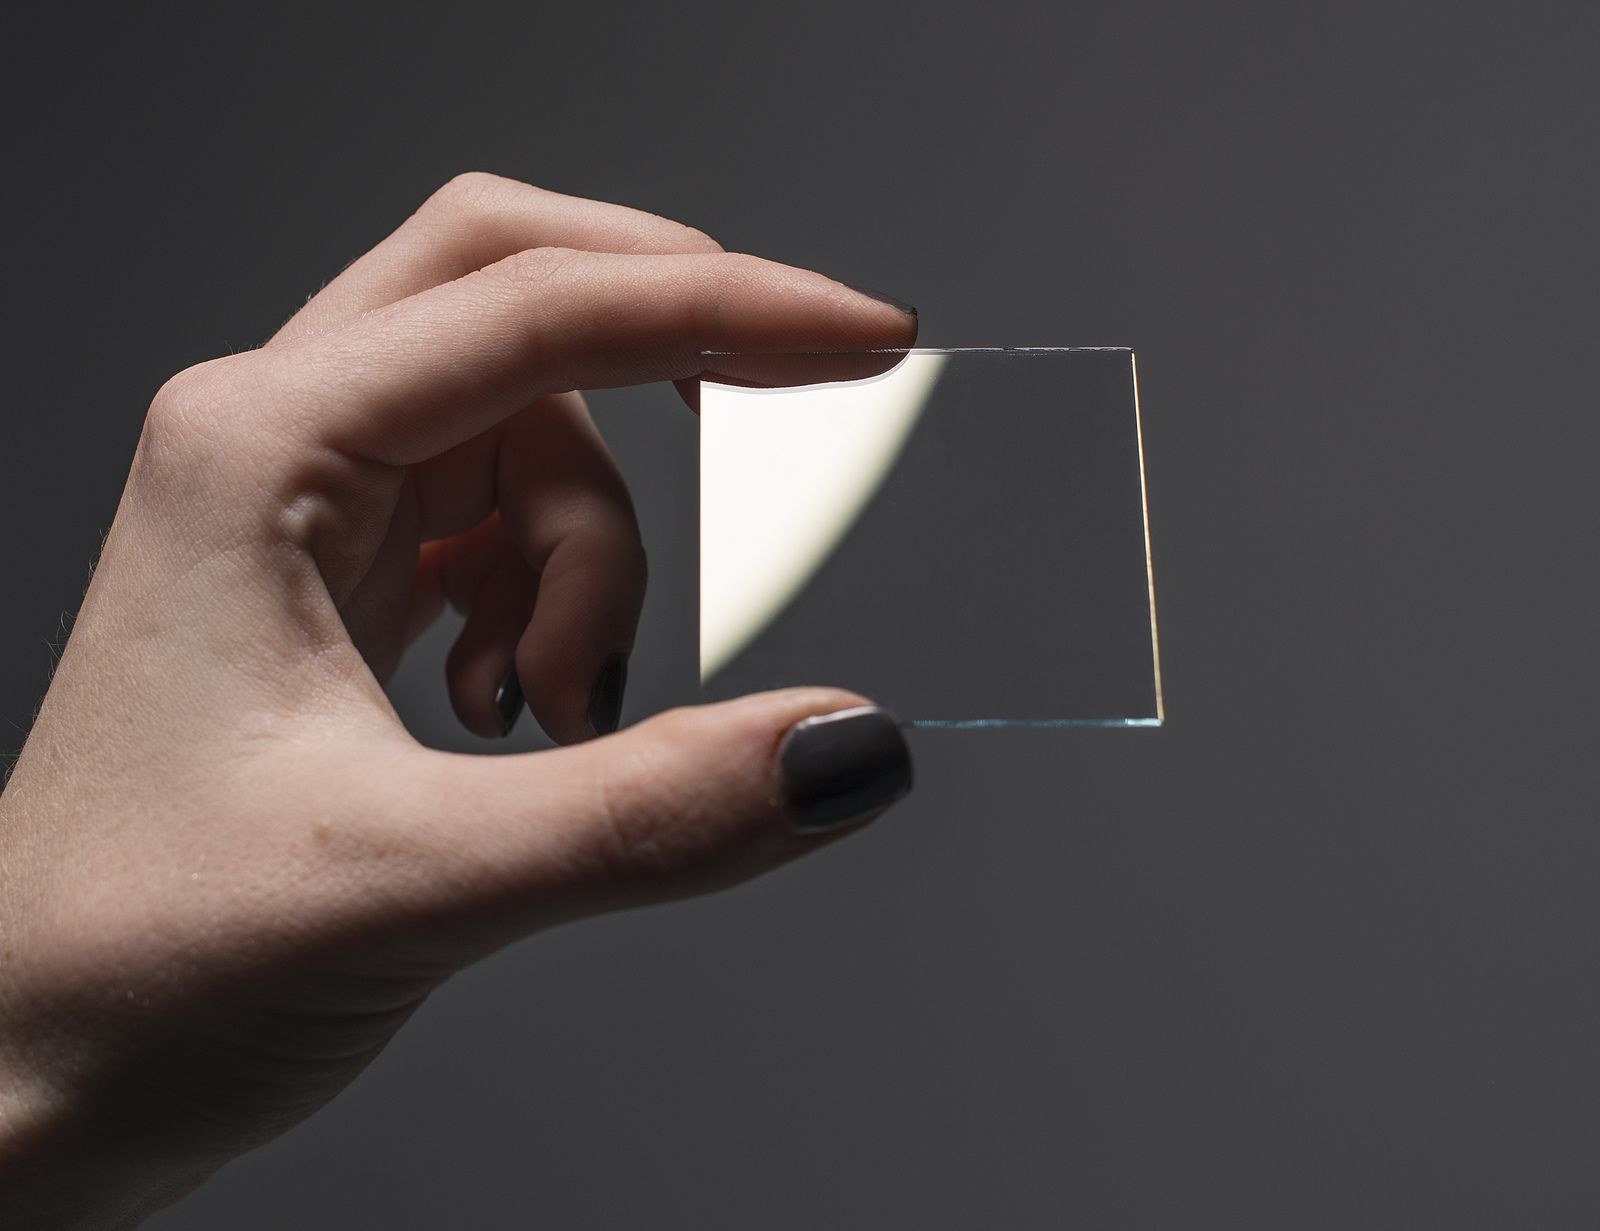 ITO (Indium Tin Oxide) Coated Glass - 50mm x 50mm   Indium tin oxide,  Conductive ink, Unbreakable